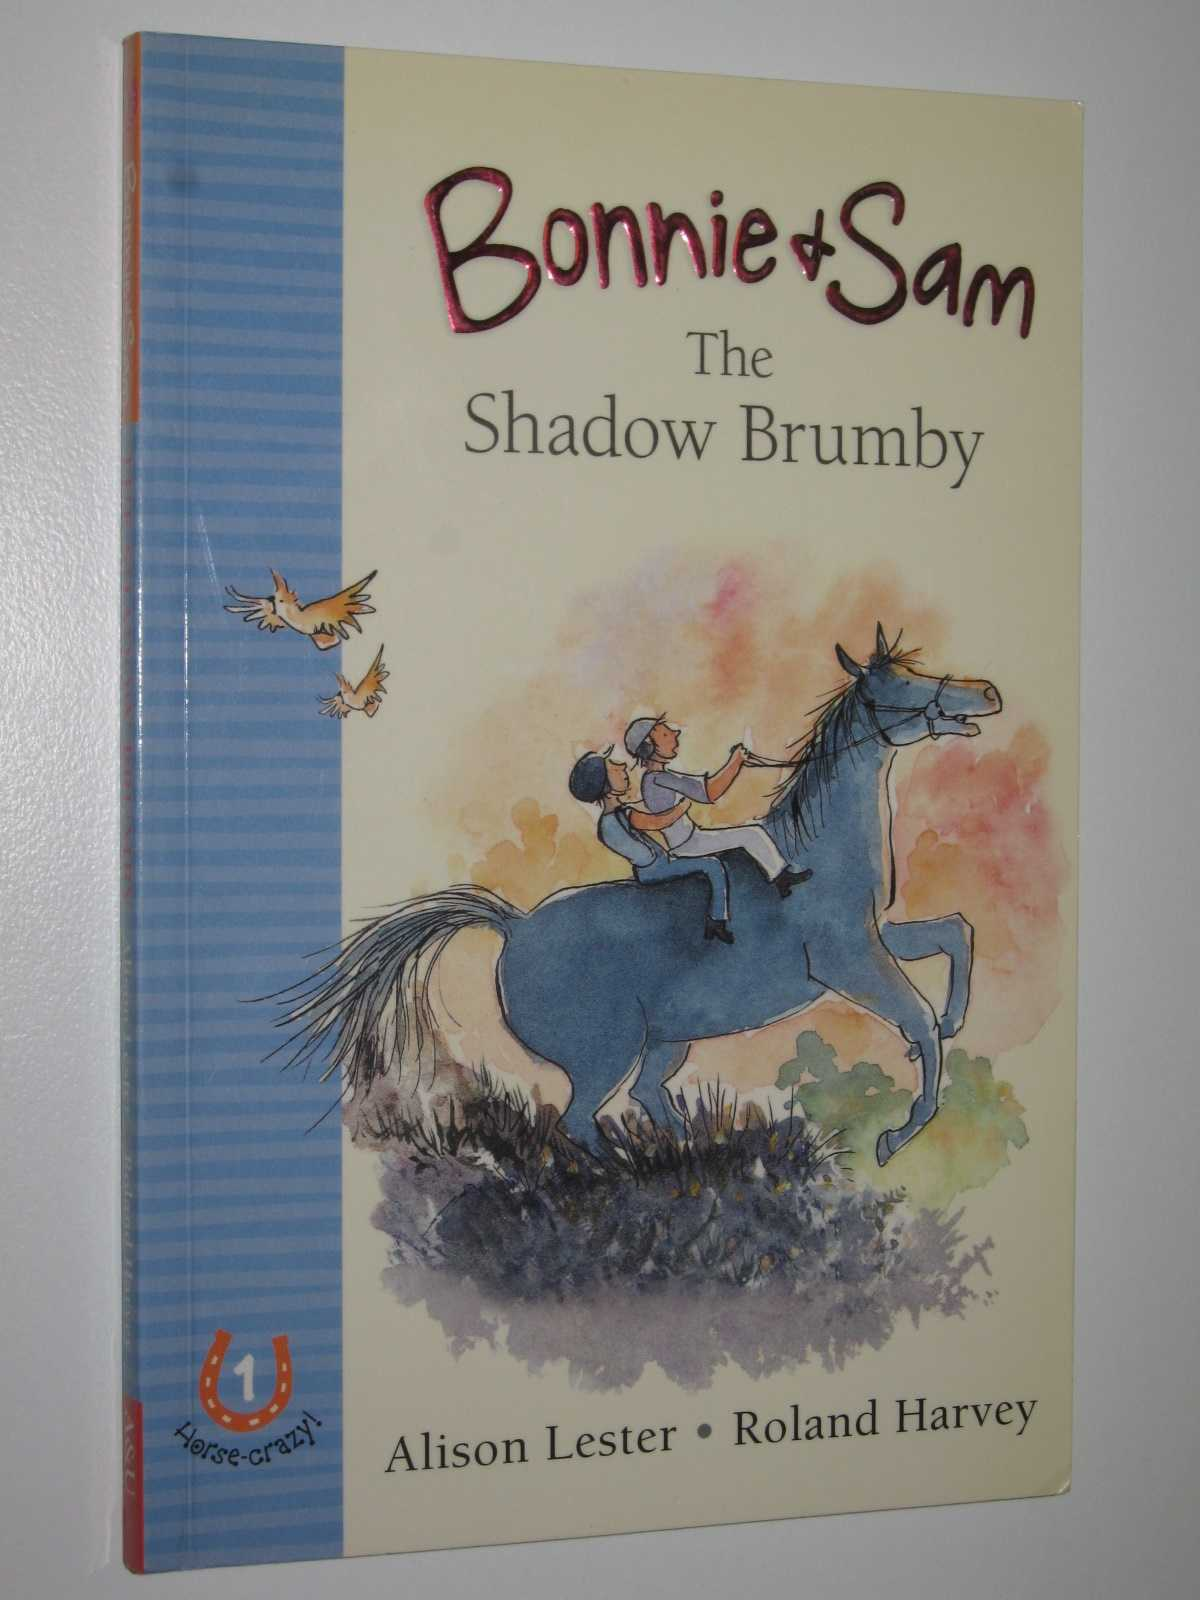 The Shadow Brumby - Bonnie and Sam #1, Lester, Alison